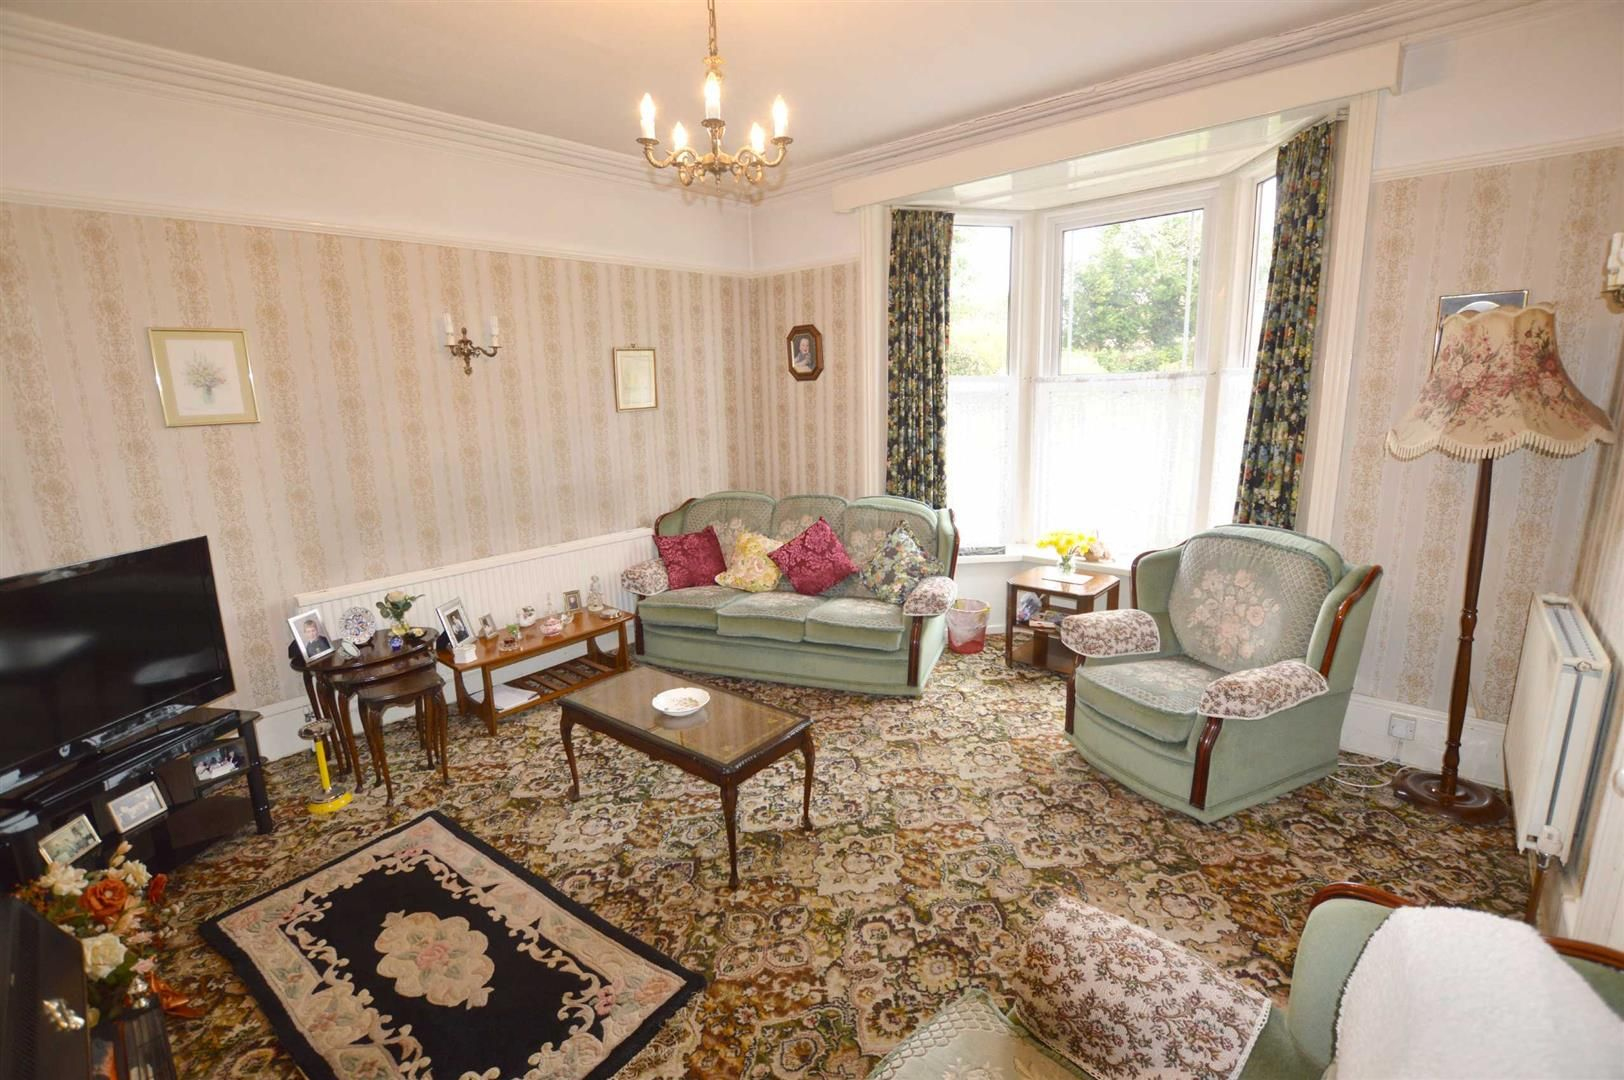 6 bed semi-detached for sale in Leominster 3